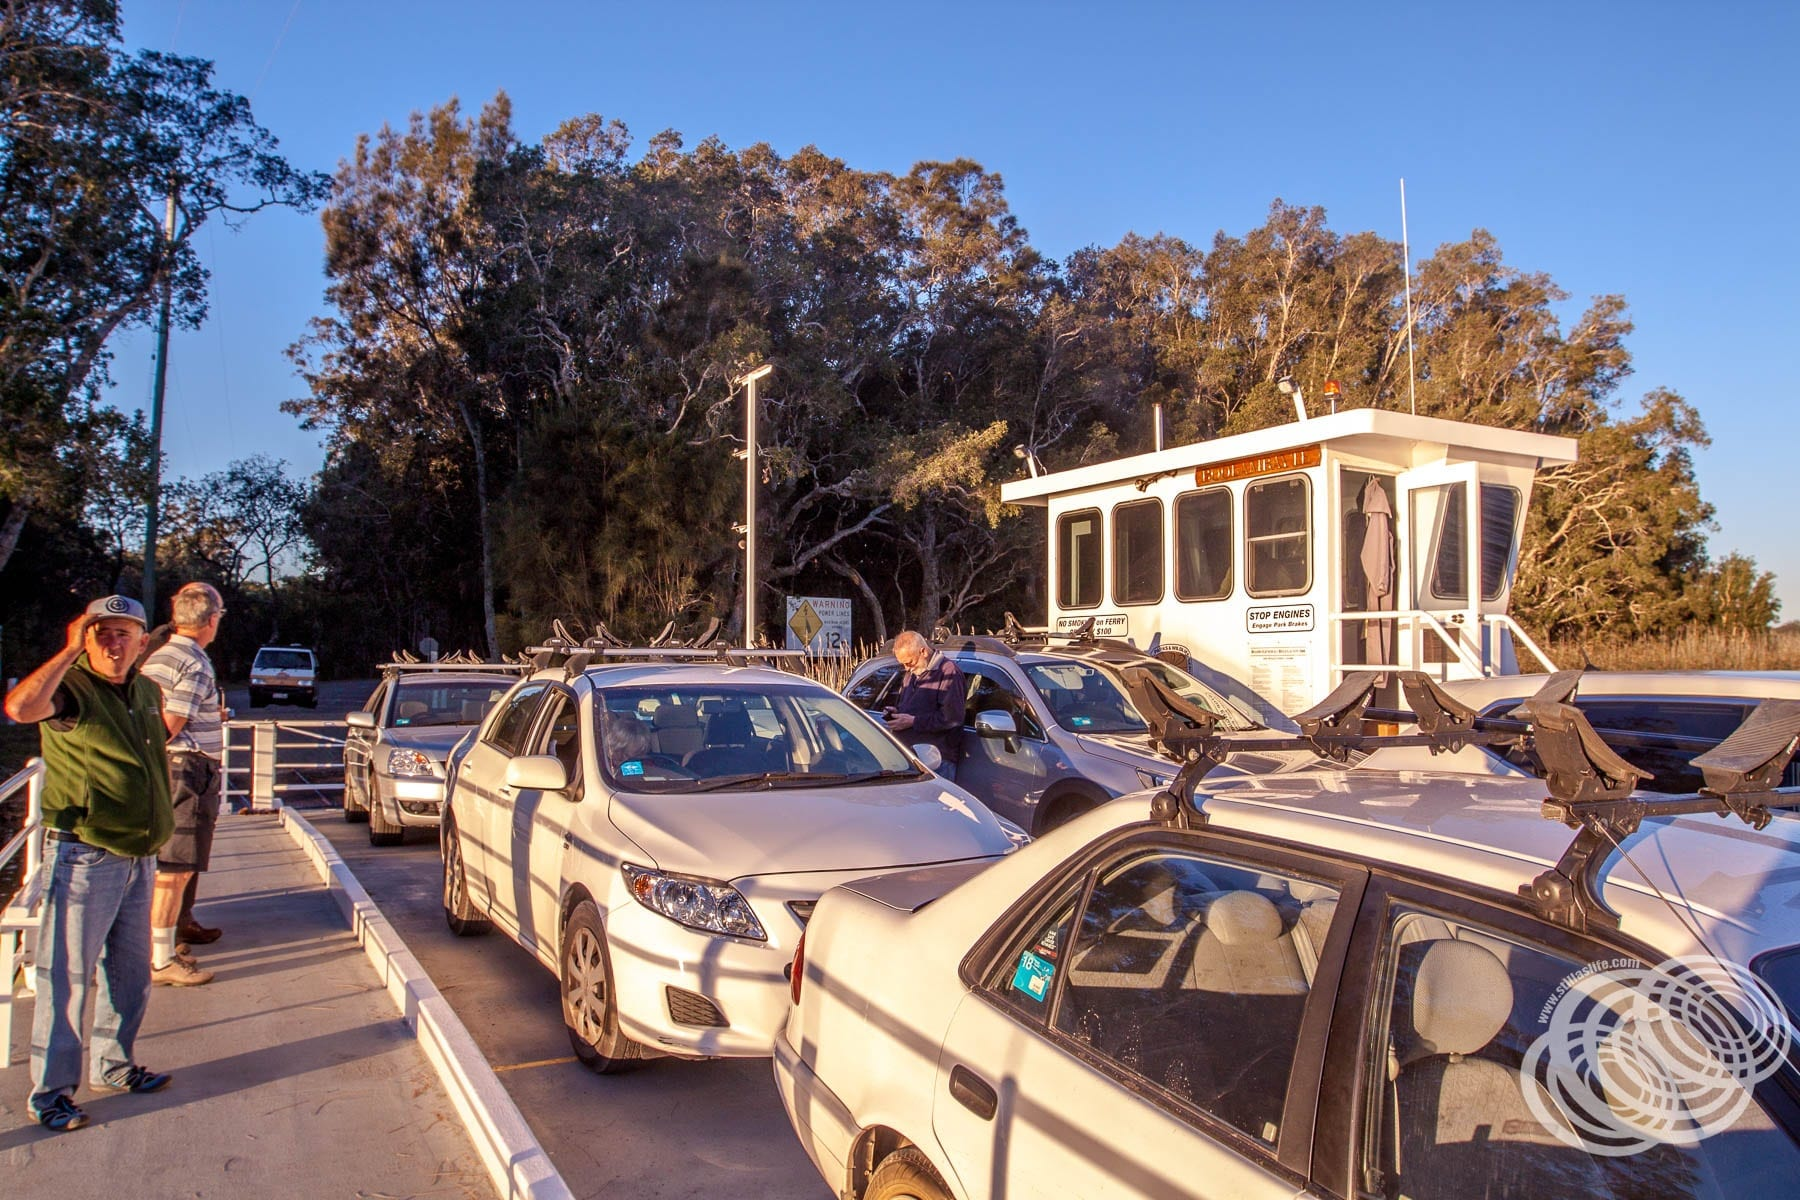 The Bombah Point Ferry carries 6 cars